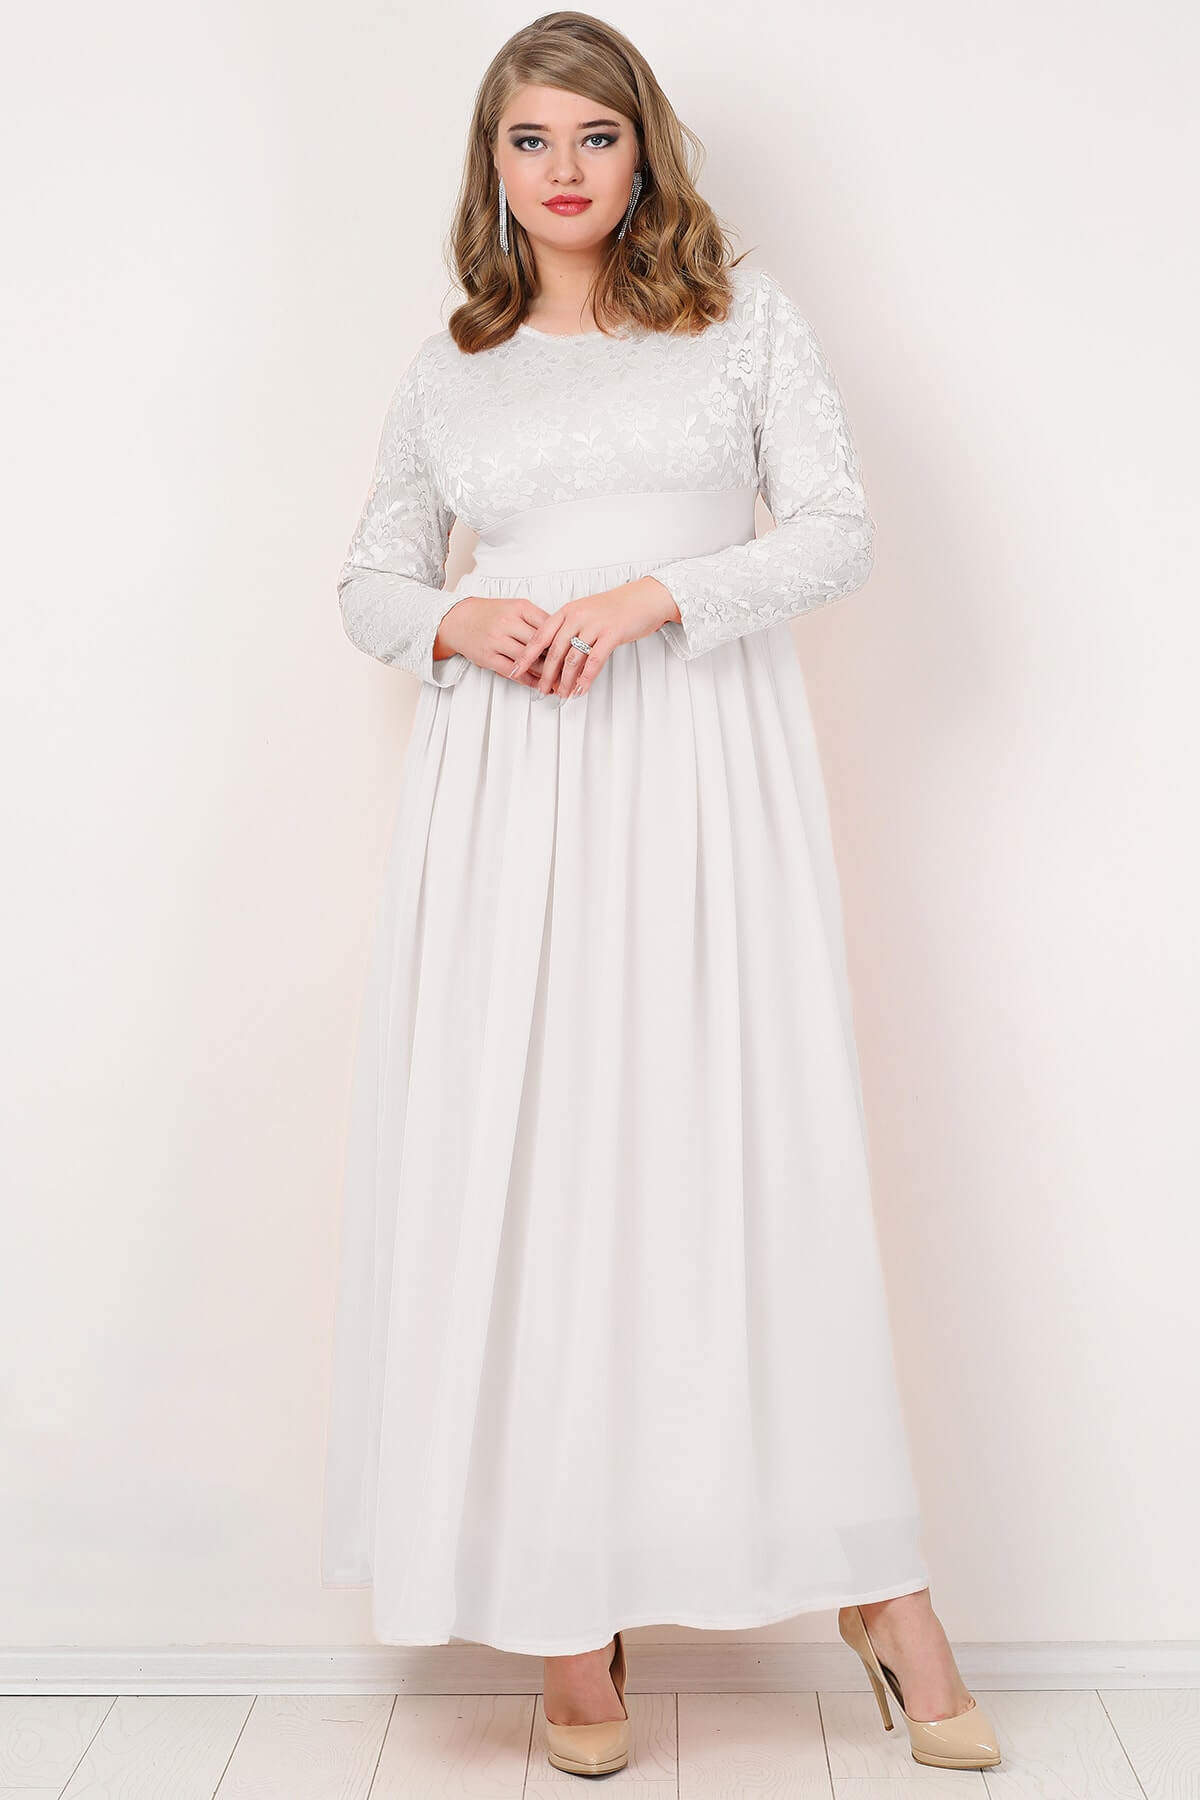 Angelino Plus Size Hijab Chiffon Lycra Long Evening Gown White Wedding Dress Long Sleeve Full Length Lycra Chic Women Clothing 1005002342581633 фото